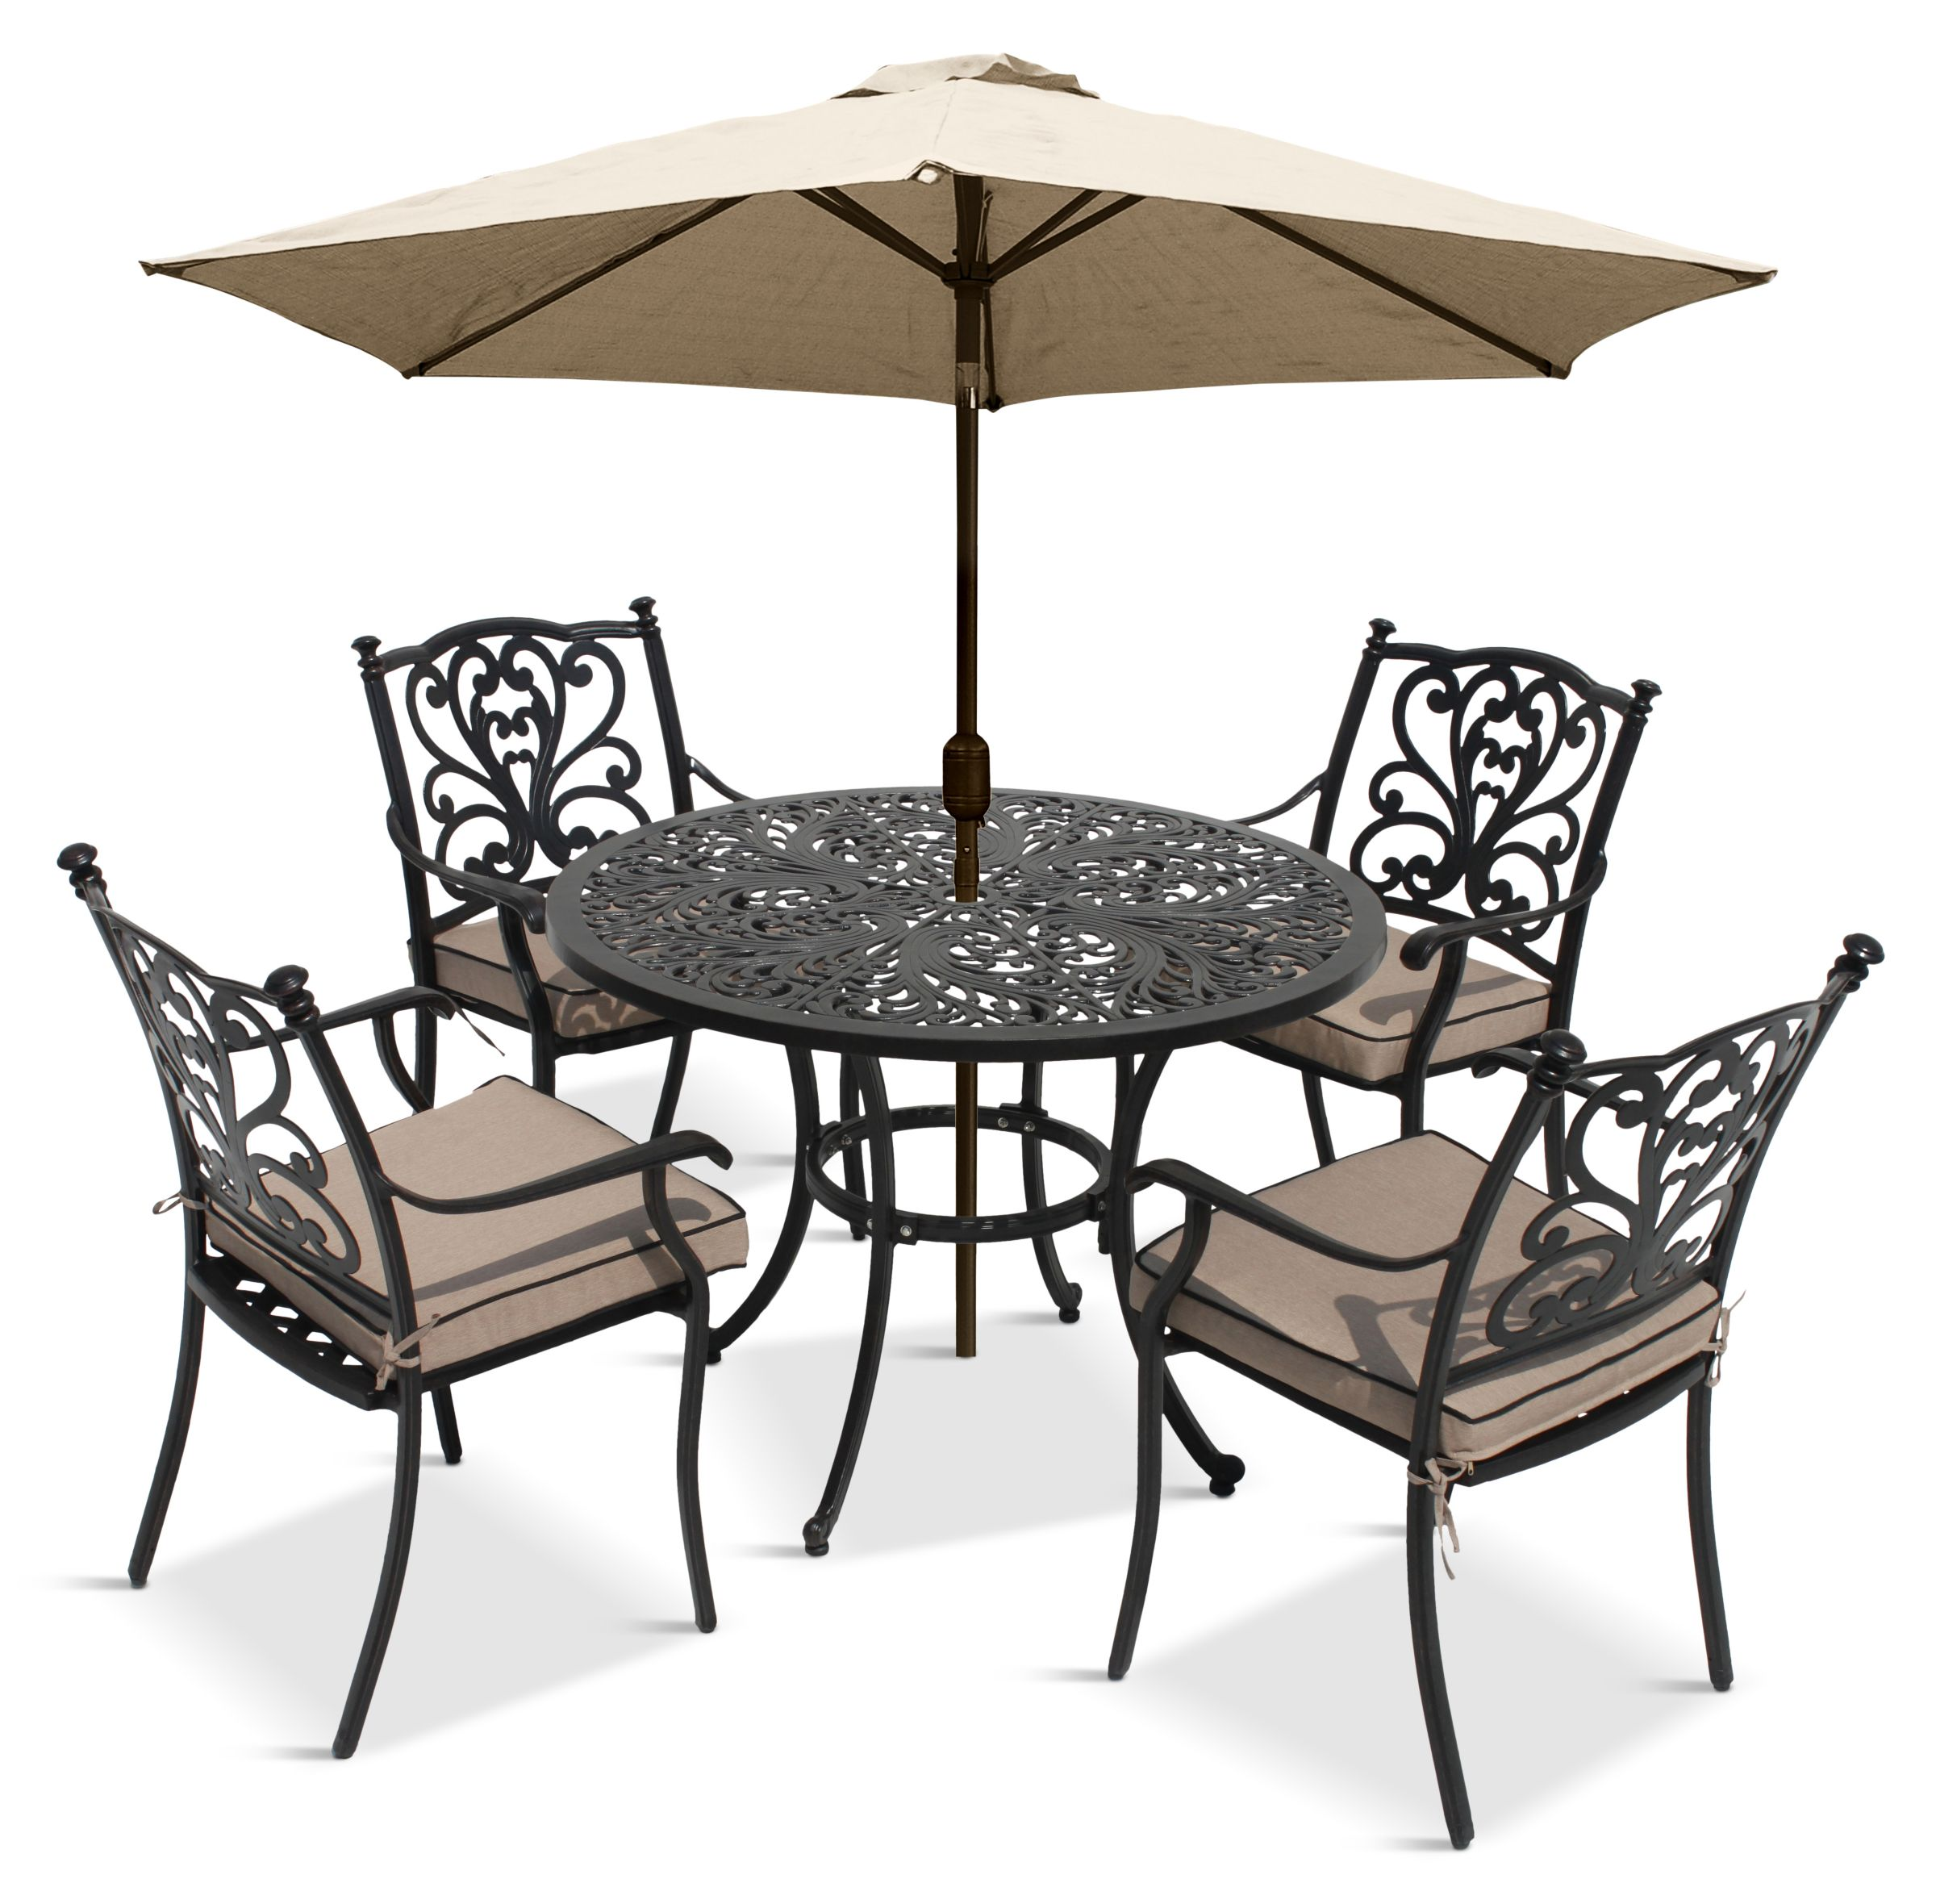 LG Outdoor LG Outdoor Devon 4 Seater Garden Dining Table and Chairs Set with Parasol, Bronze